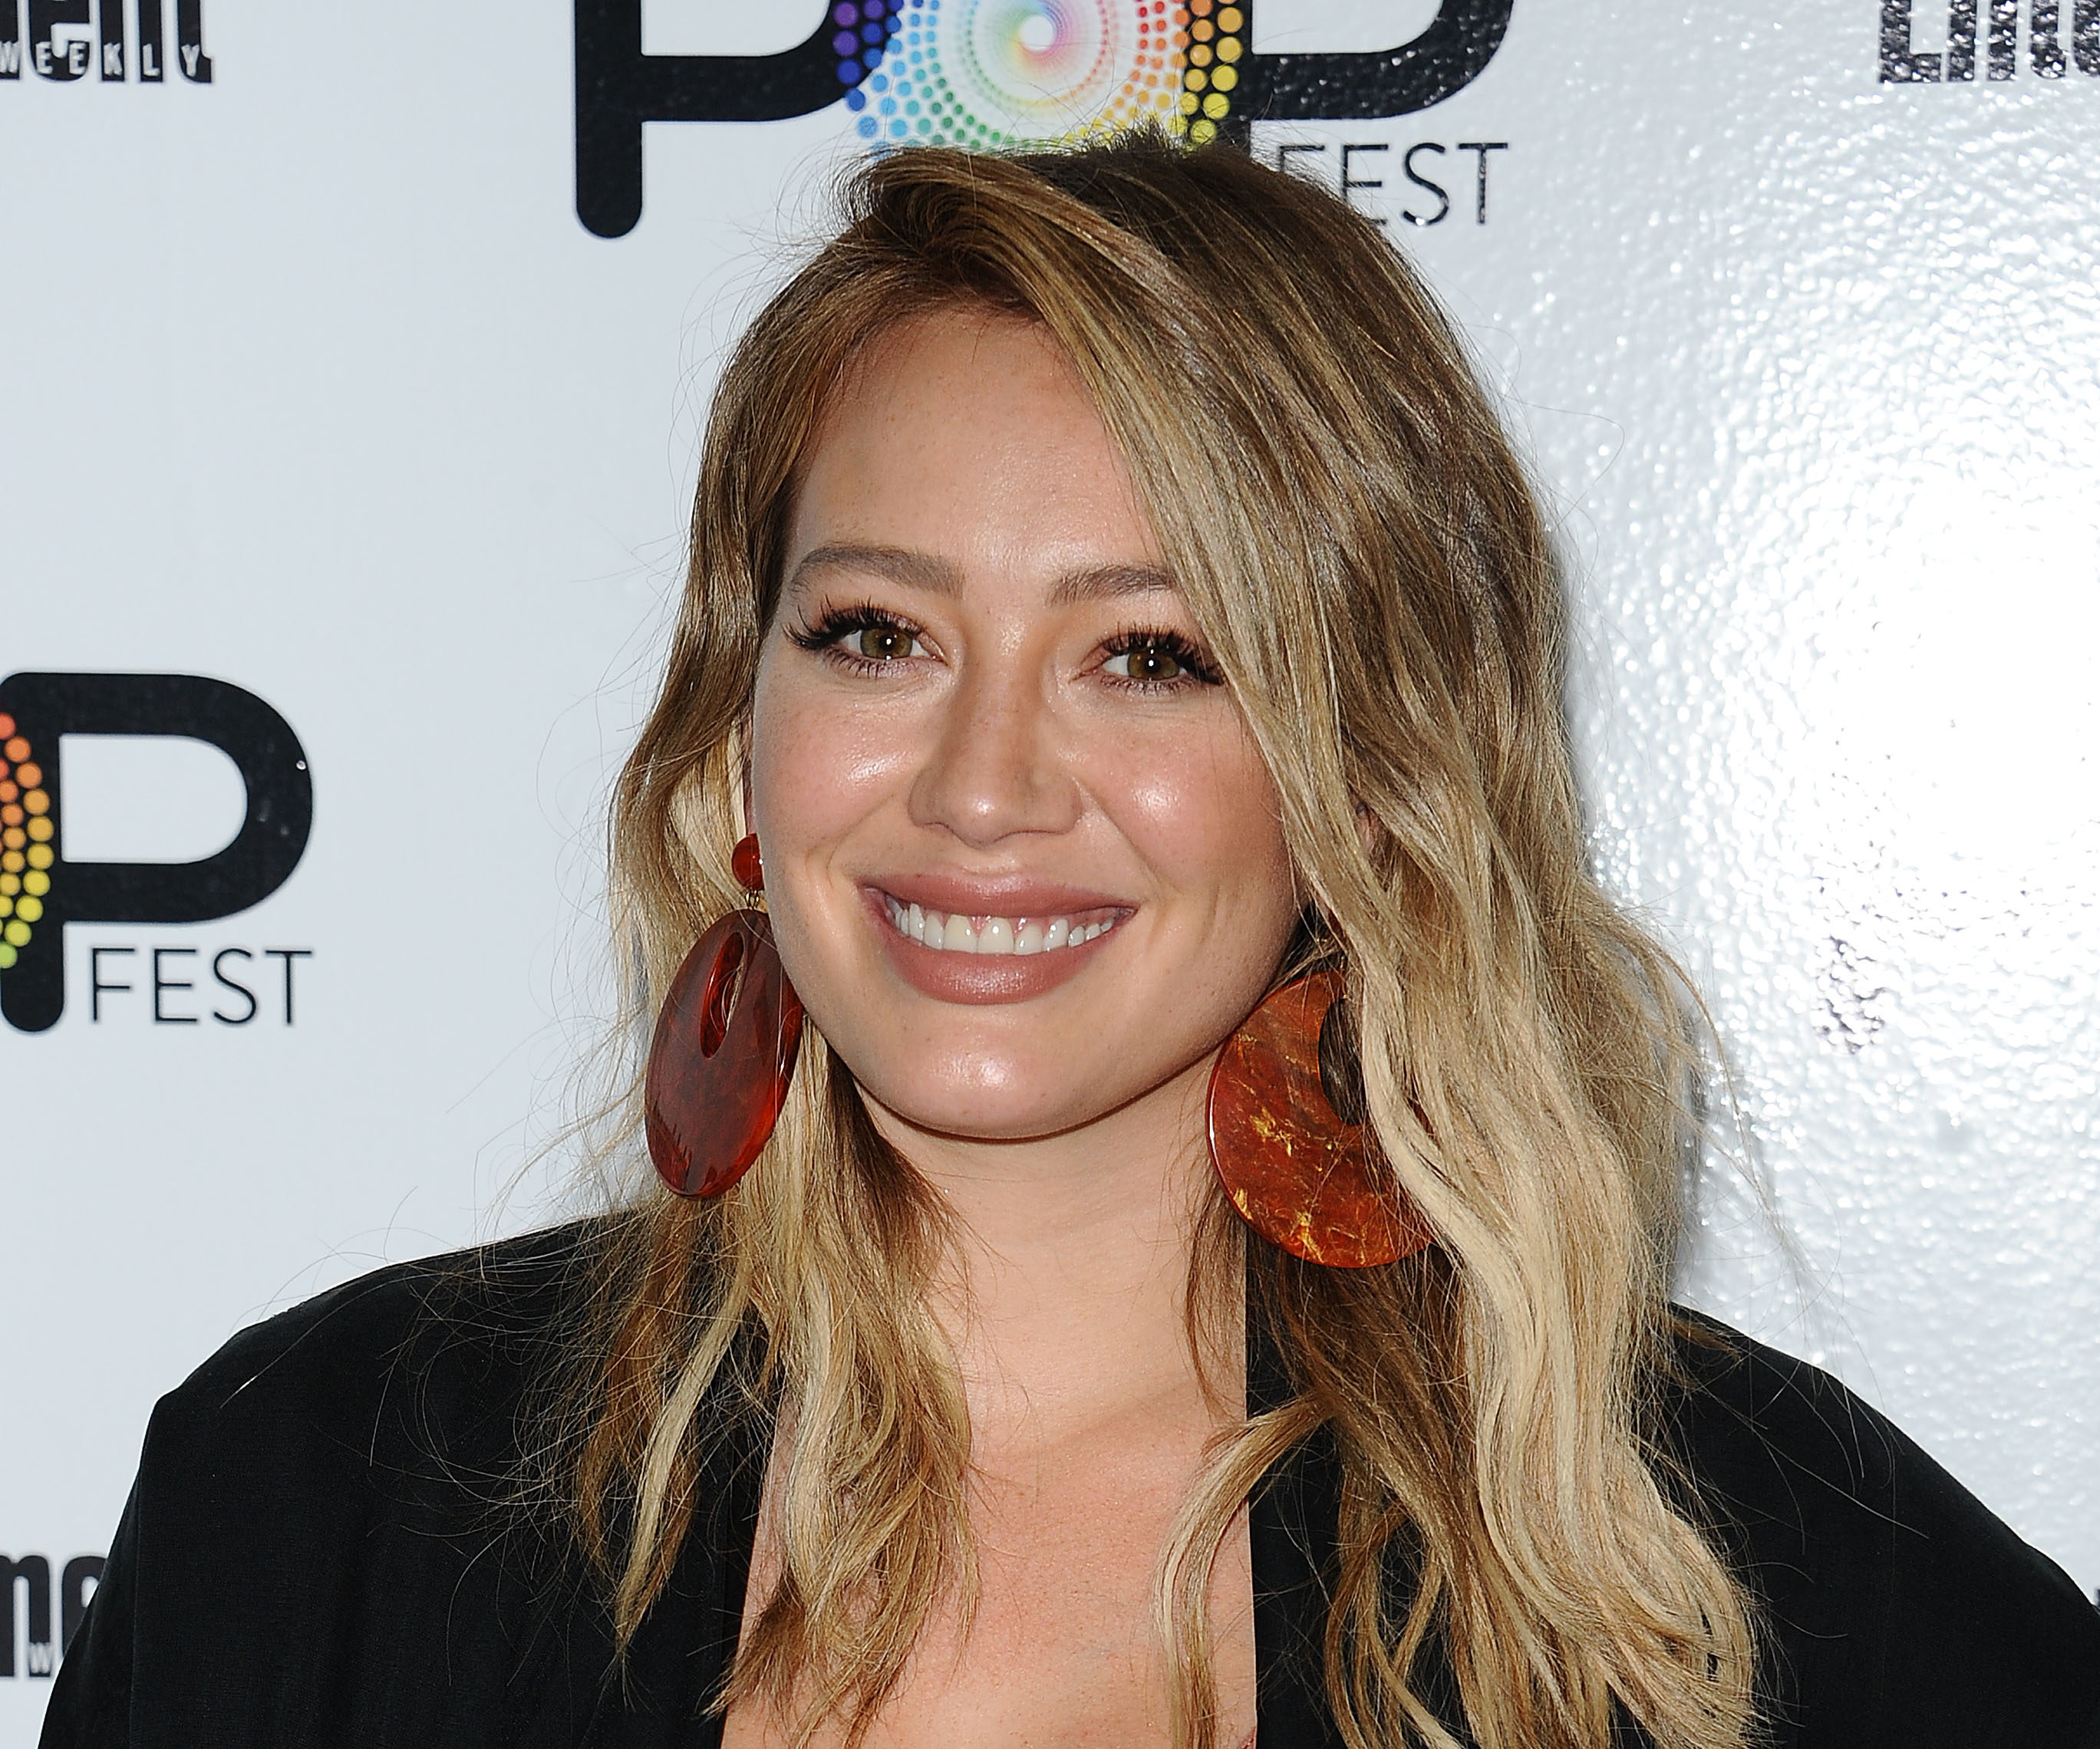 Hilary Duff's oversized sweater has the most stunning bird design on it